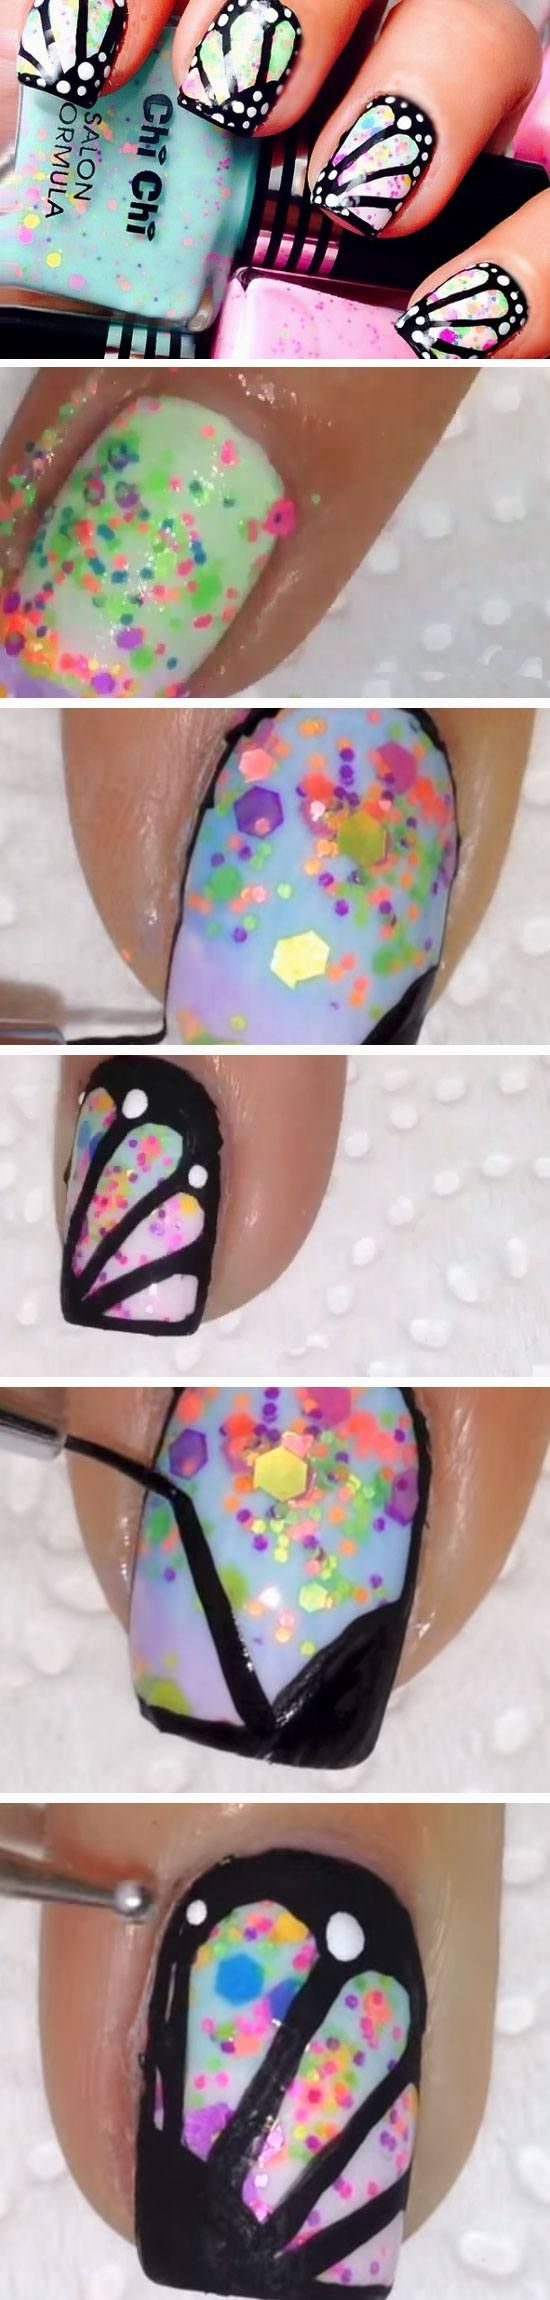 257 best Nails images on Pinterest | Enamels, Make up and Nail designs